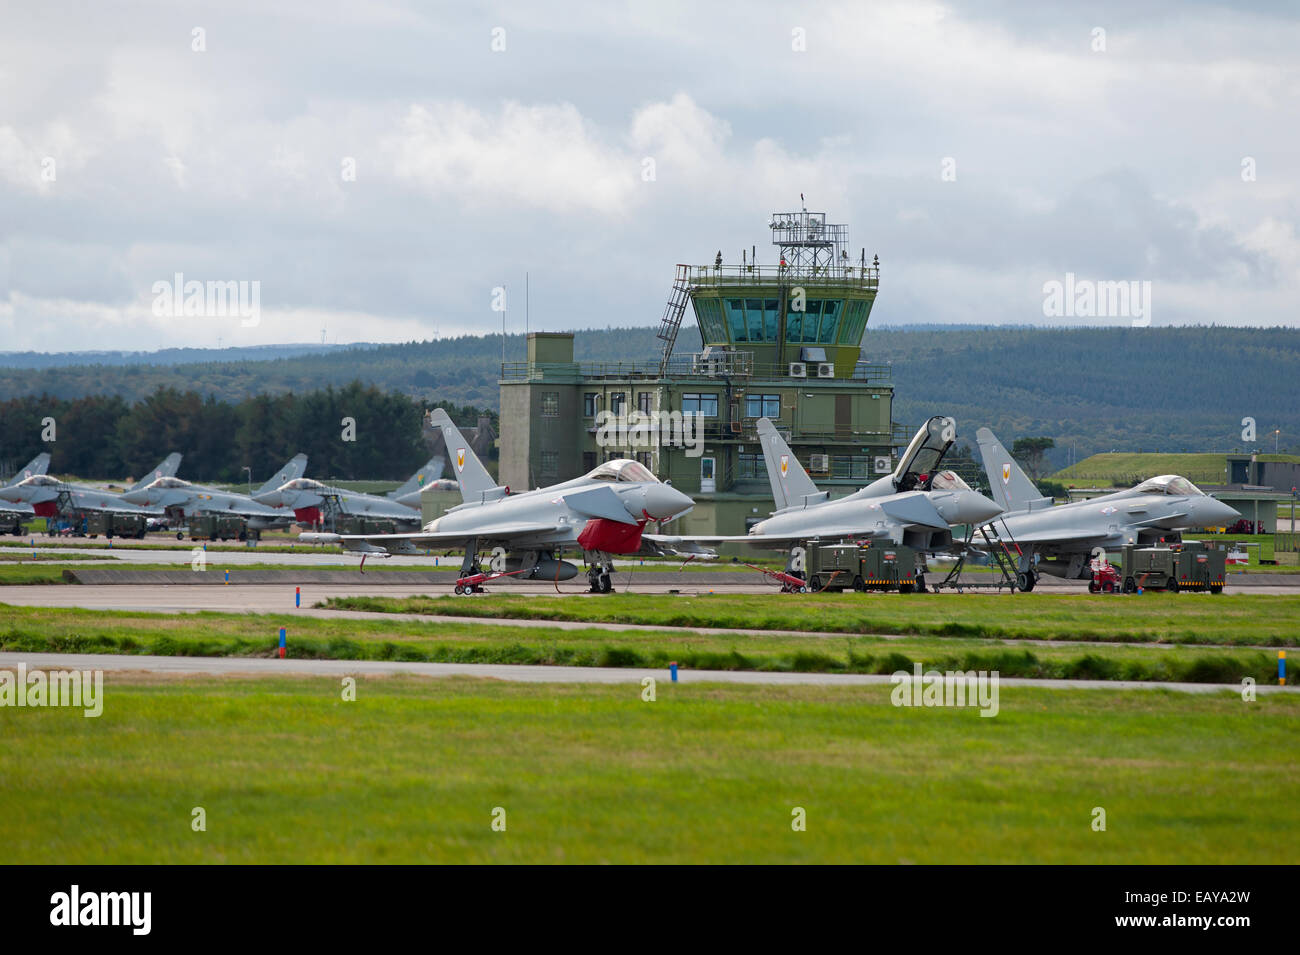 RAF No 1 & 6 Squadron Eurofighter Typhoons FRG4s Home Base Lossiemouth, Moray Scotland.  SCO 9175 - Stock Image